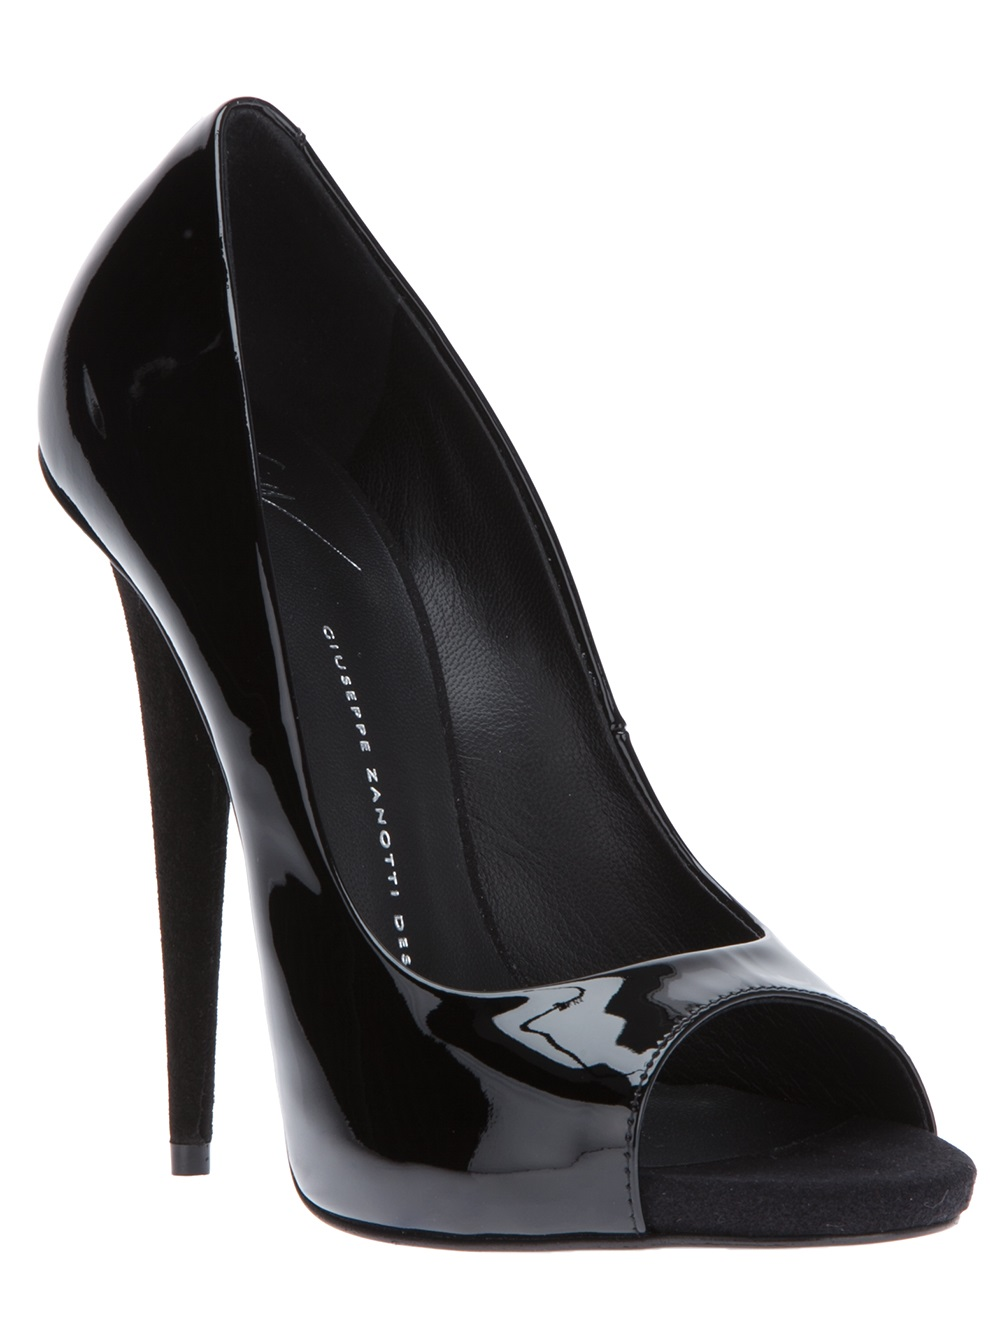 black peep toe pumps gallery GGJCJZQ